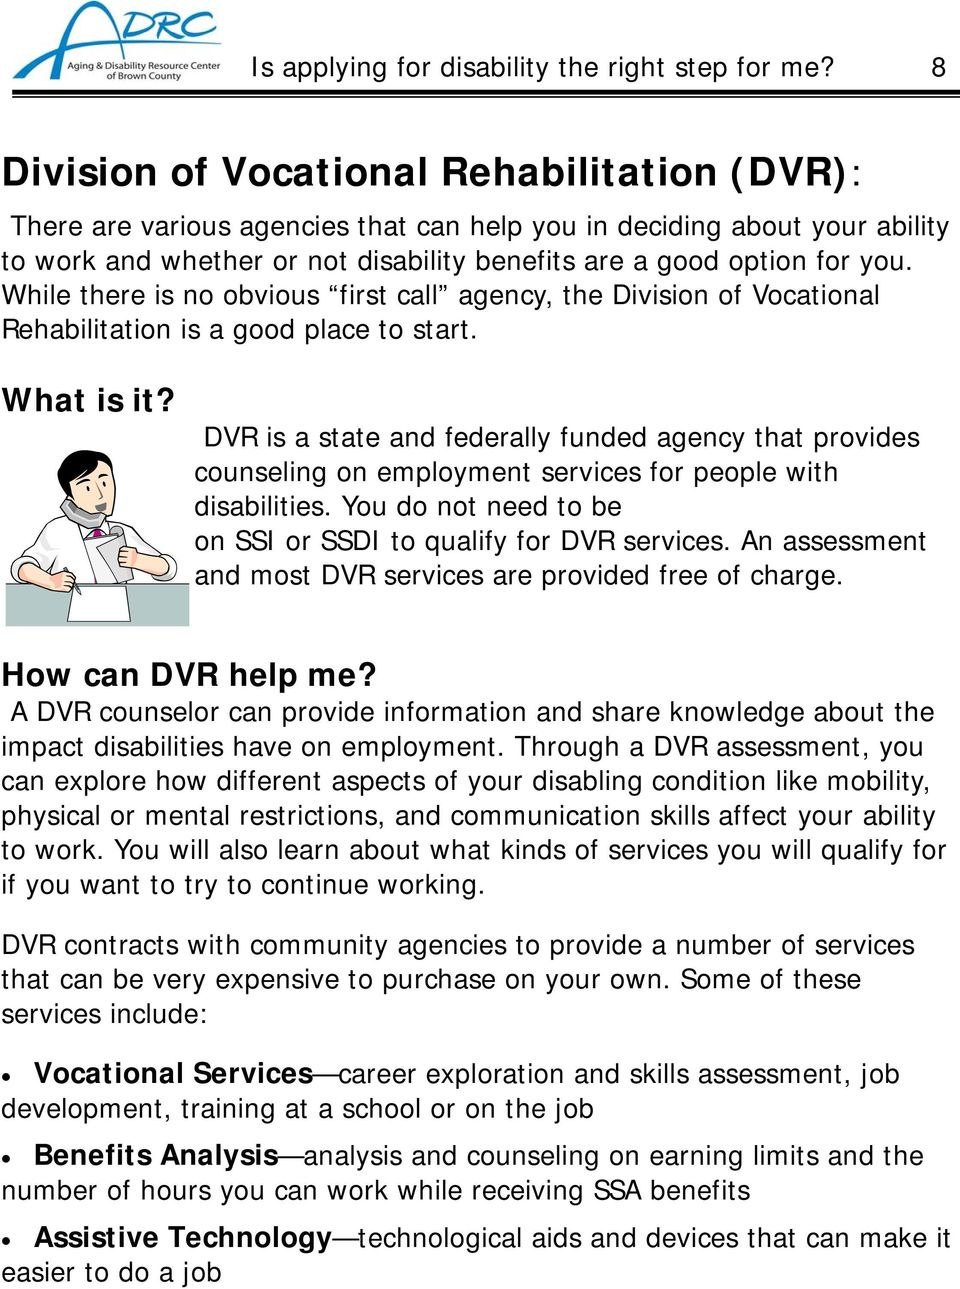 While there is no obvious first call agency, the Division of Vocational Rehabilitation is a good place to start. What is it?